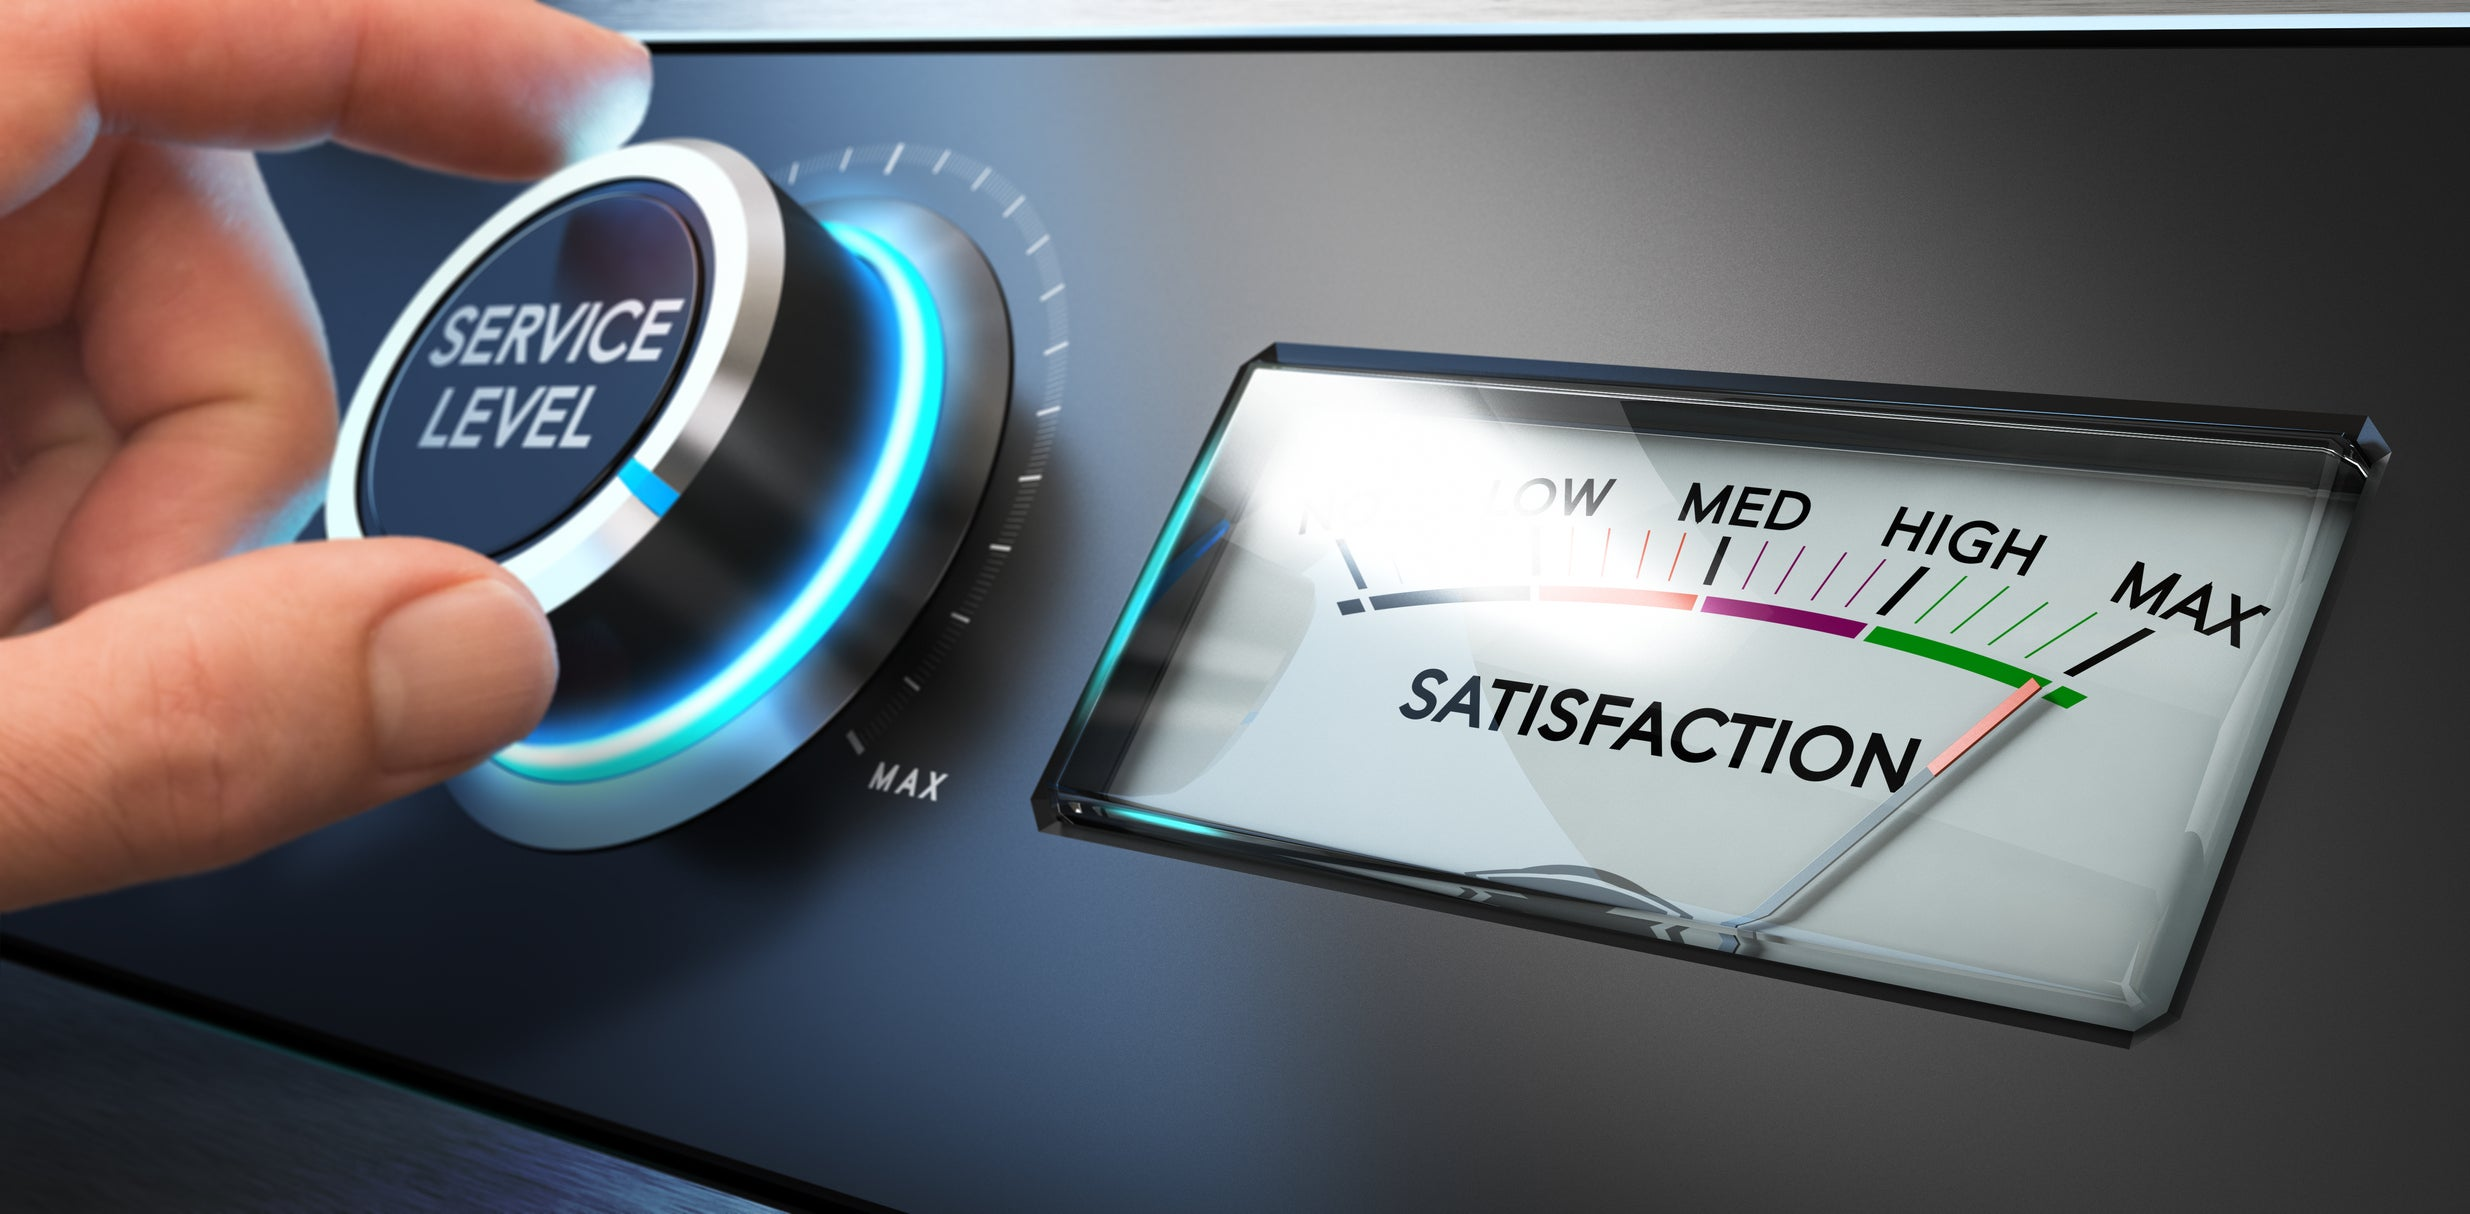 A knob with the words service level turned up to the maximum level, next to a dial with the word satisfaction.